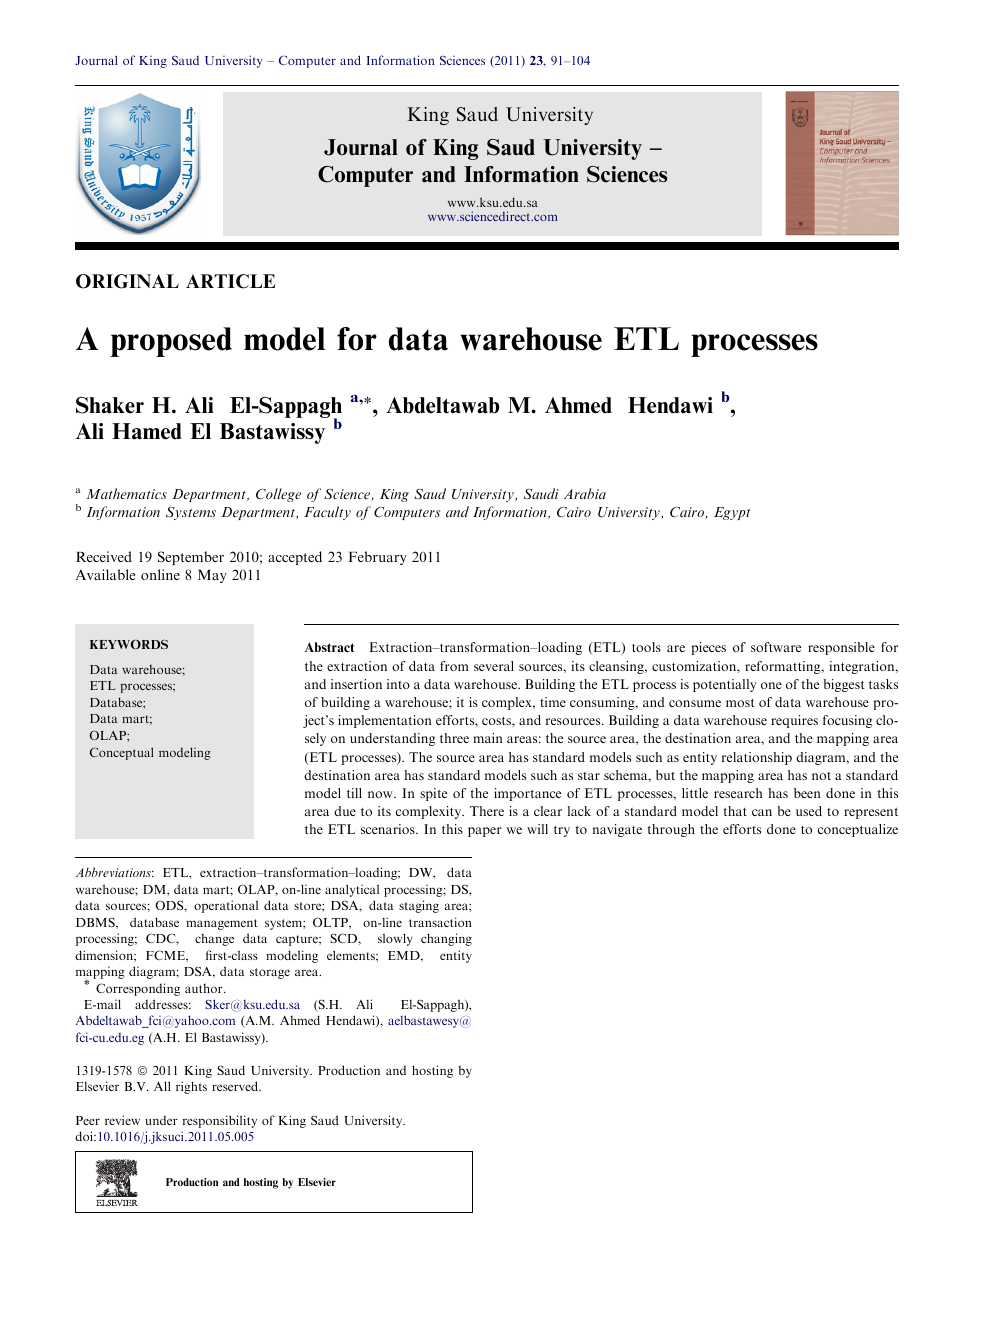 A proposed model for data warehouse ETL processes – topic of